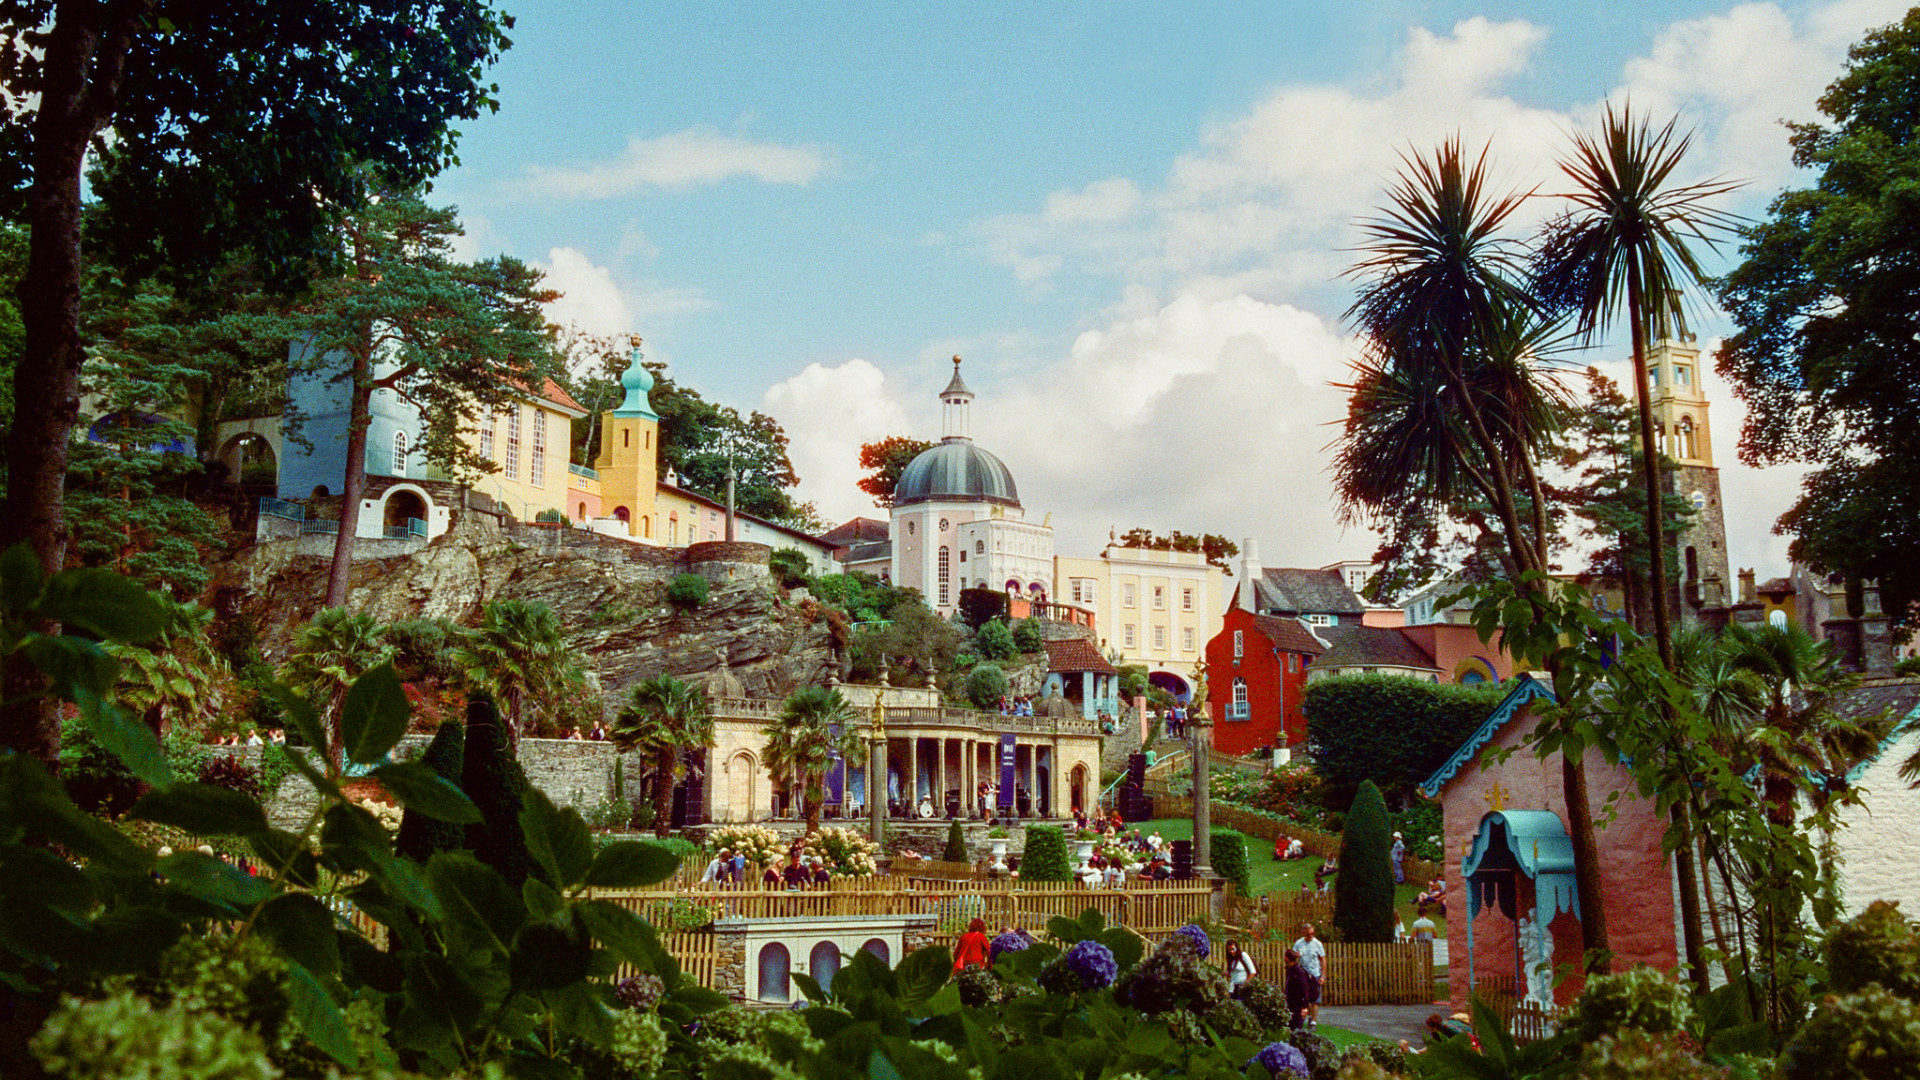 Festival No.6 in Portmeirion, Cornwall